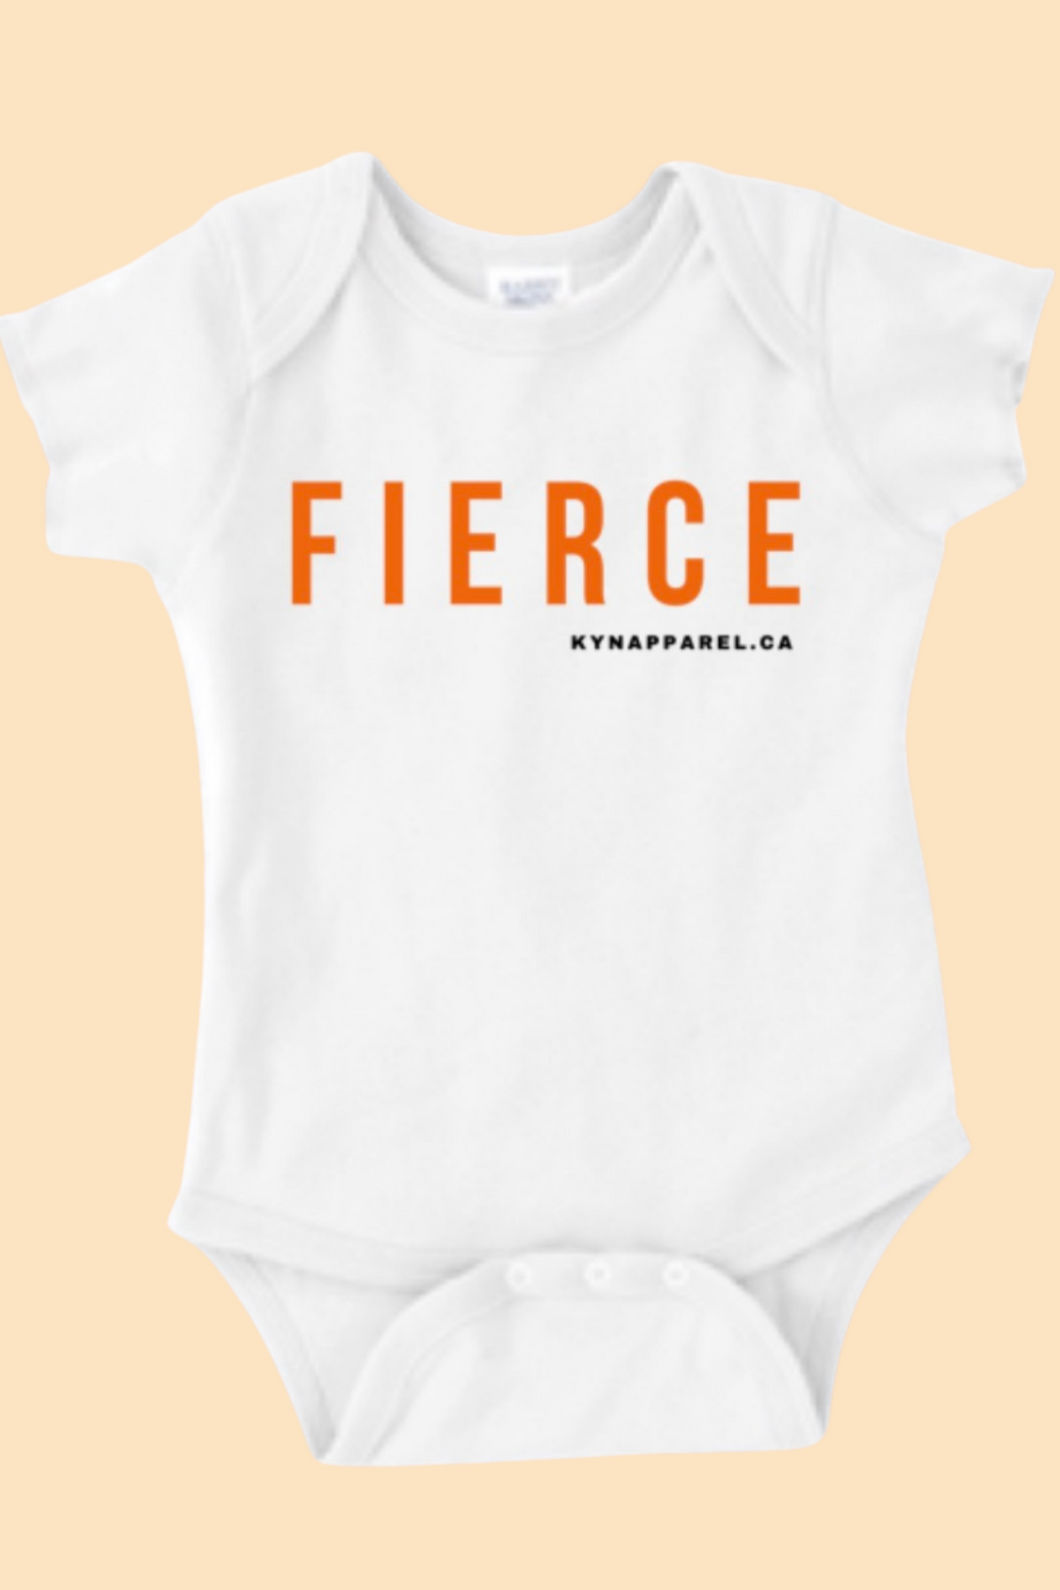 FIERCE Baby Bodysuit